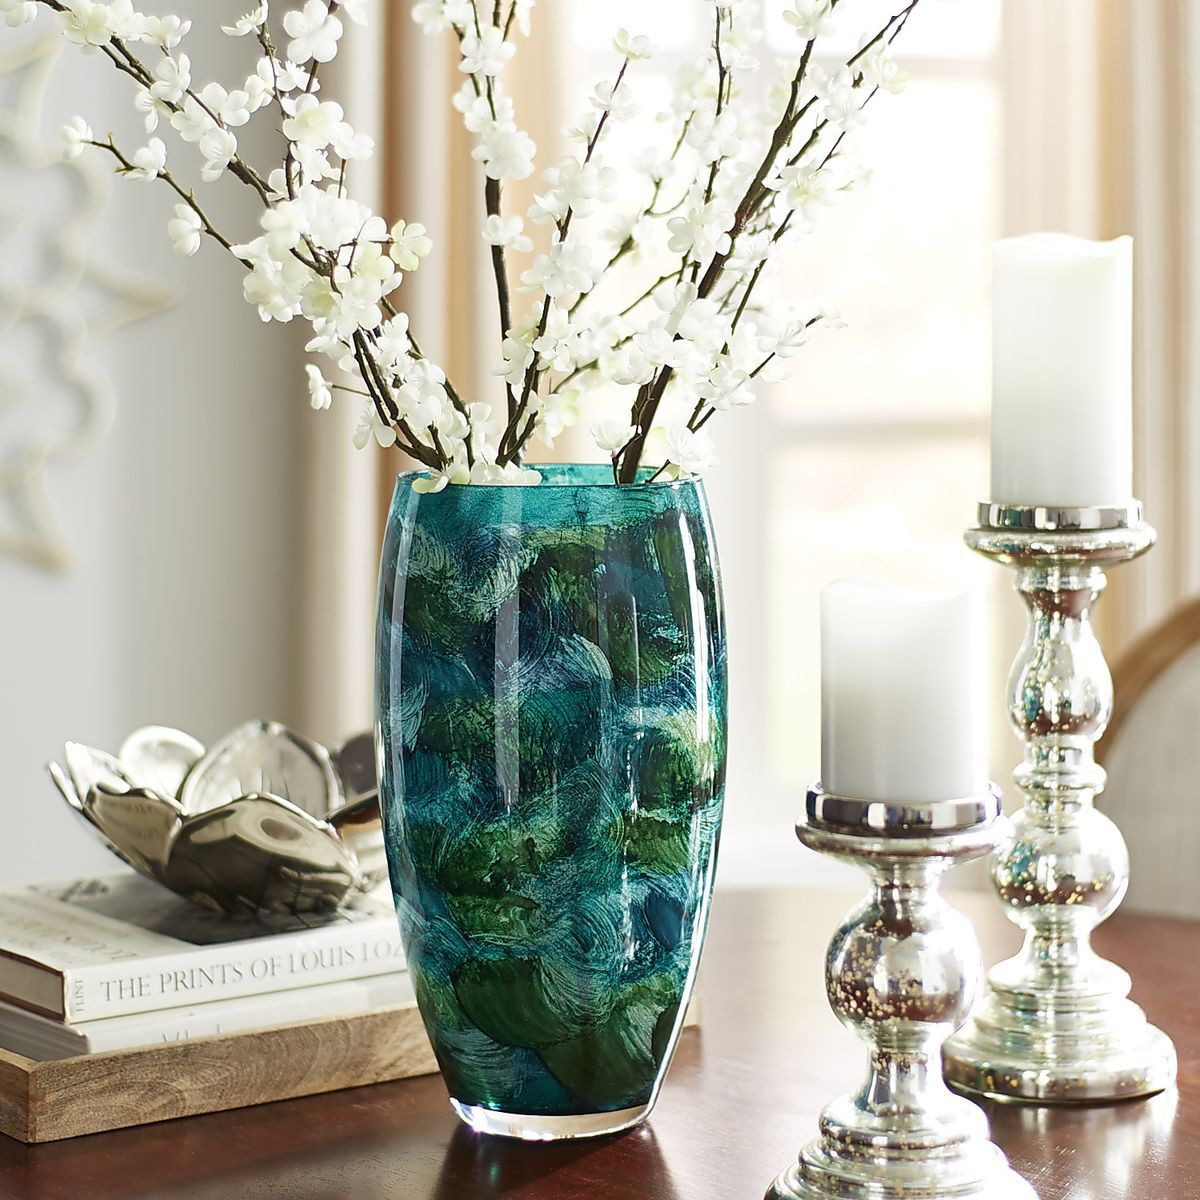 pier one tall vases of love what they did with the vase home stuff pinterest regarding love what they did with the vase